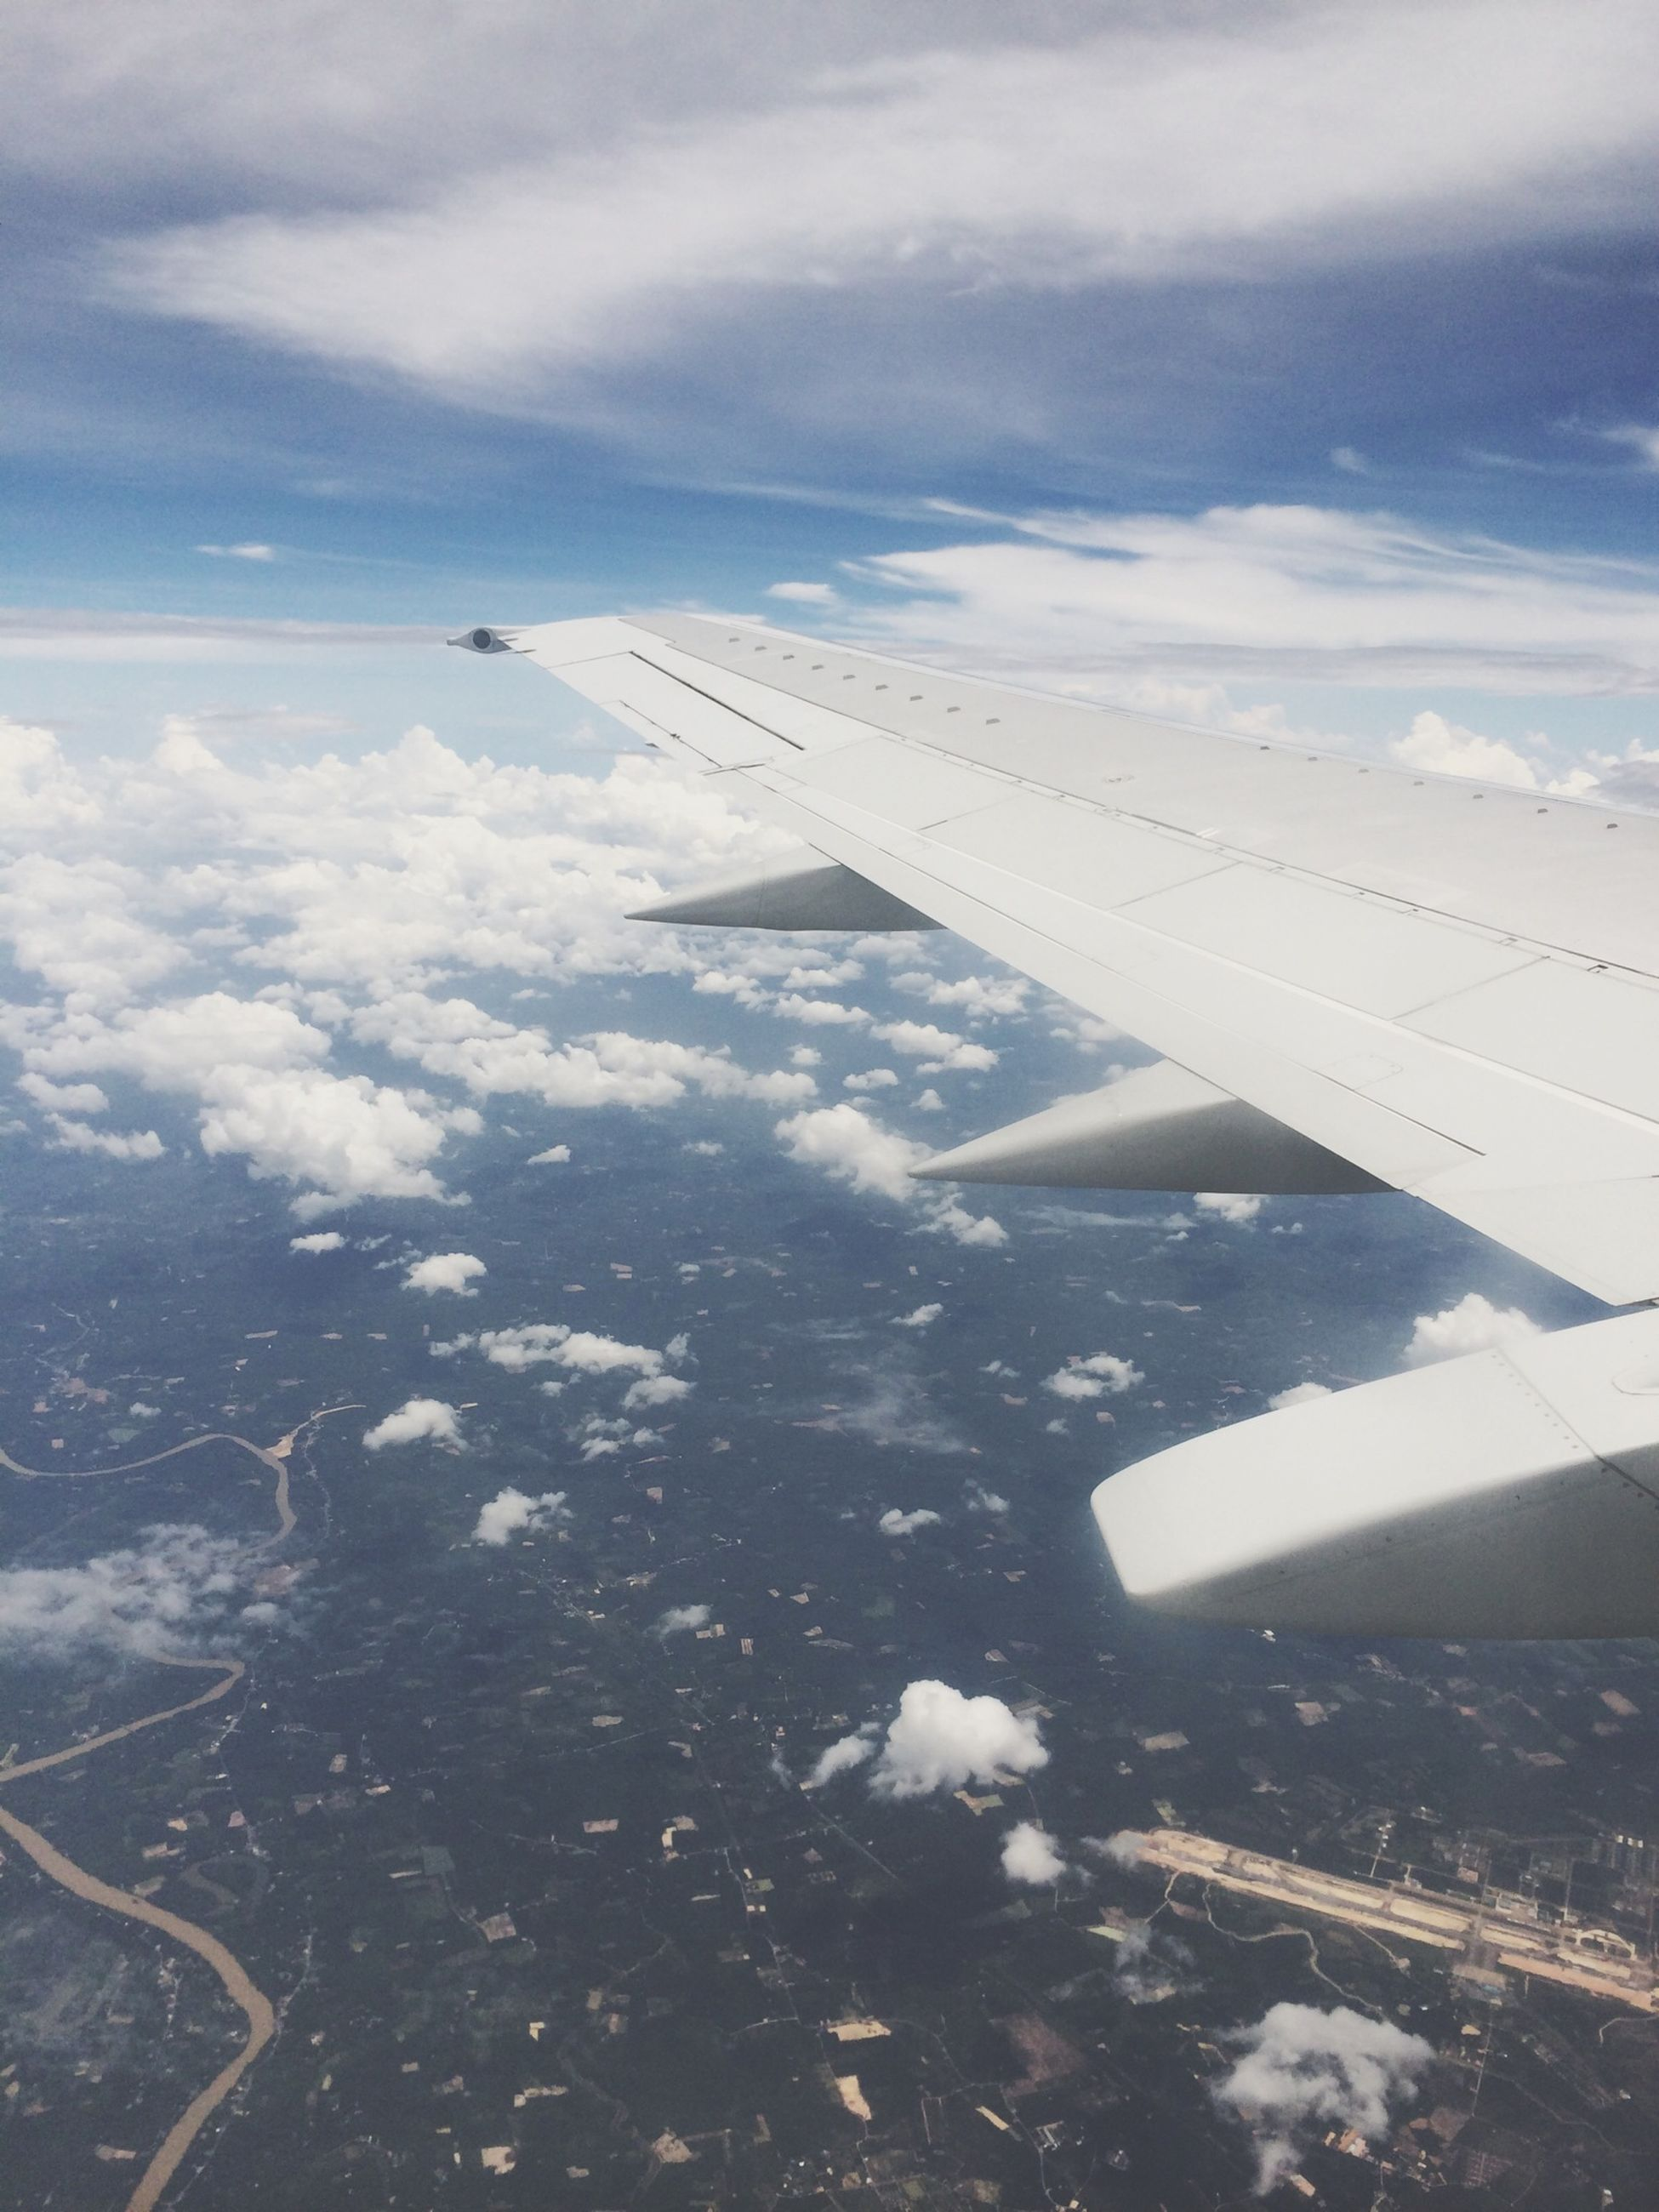 airplane, aircraft wing, air vehicle, flying, transportation, aerial view, mode of transport, sky, mid-air, part of, cropped, landscape, cloud - sky, public transportation, travel, on the move, airplane wing, journey, scenics, nature